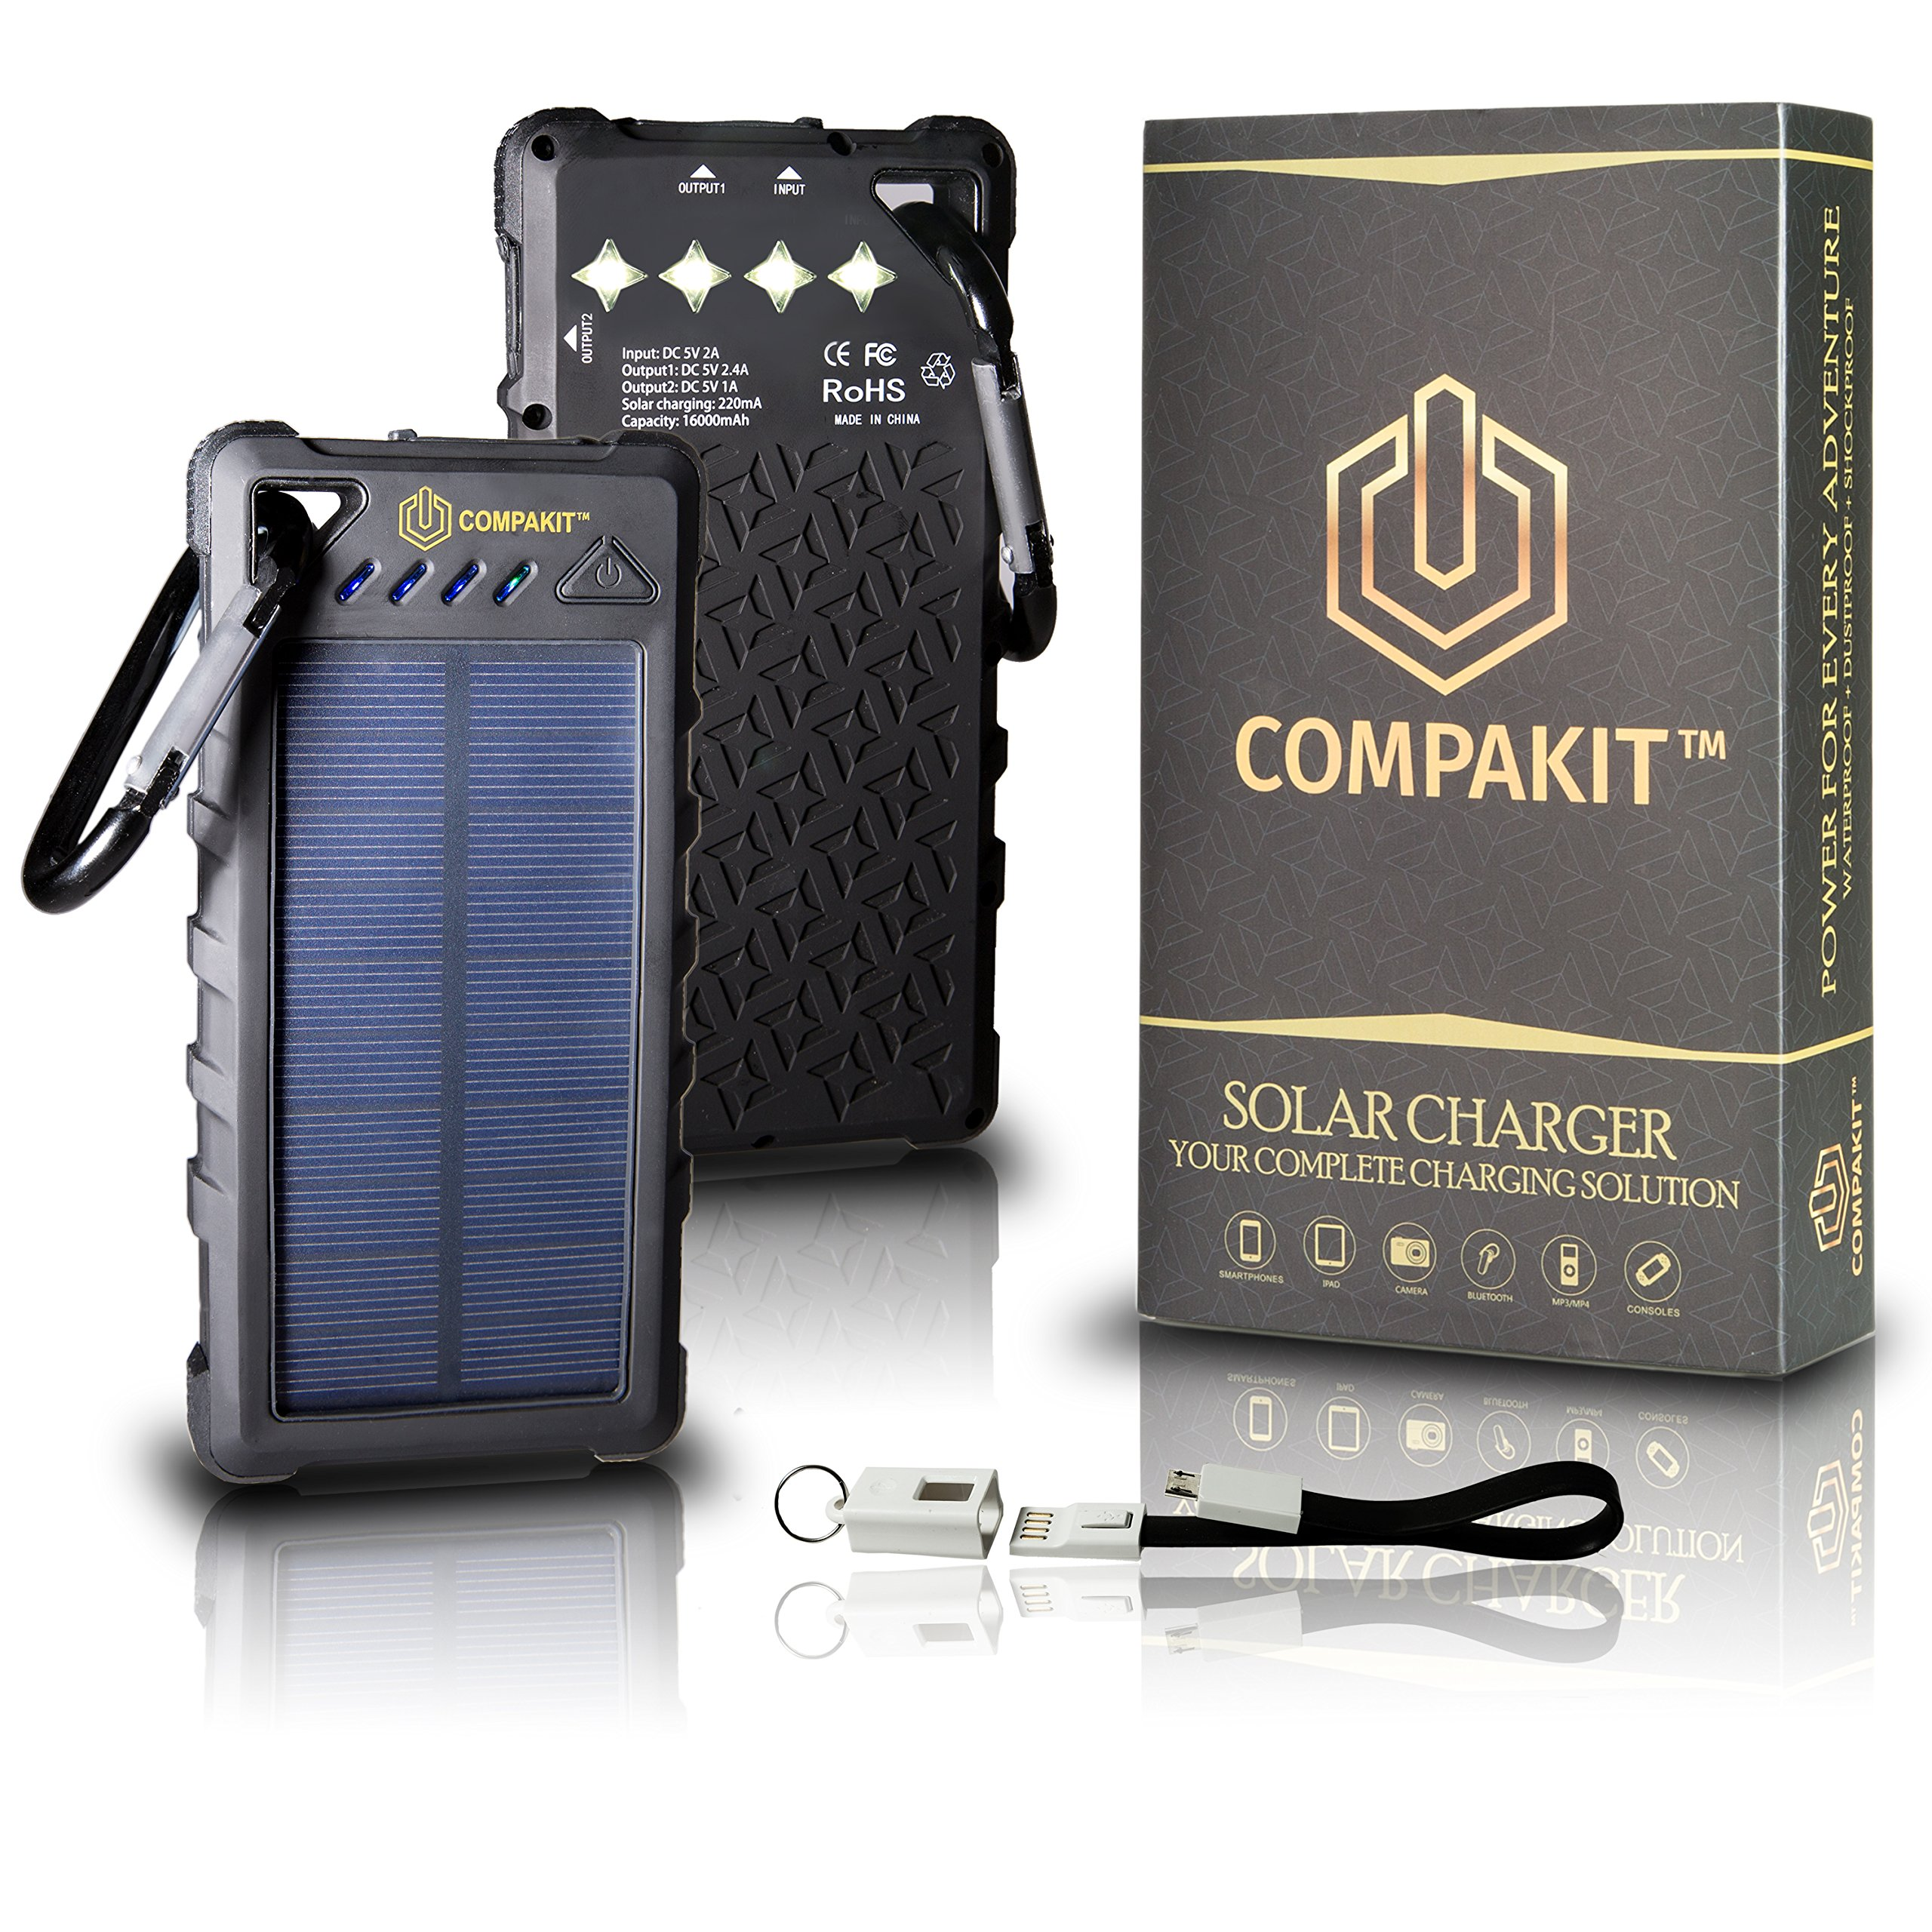 Compakit Solar Phone Charger Huge Capacity 16000 mAh Dual USB Power Bank   IP67 Waterproof with 4 LED Flashlight, Universal Compatibility Cell Phone Battery Pack for Men & Women